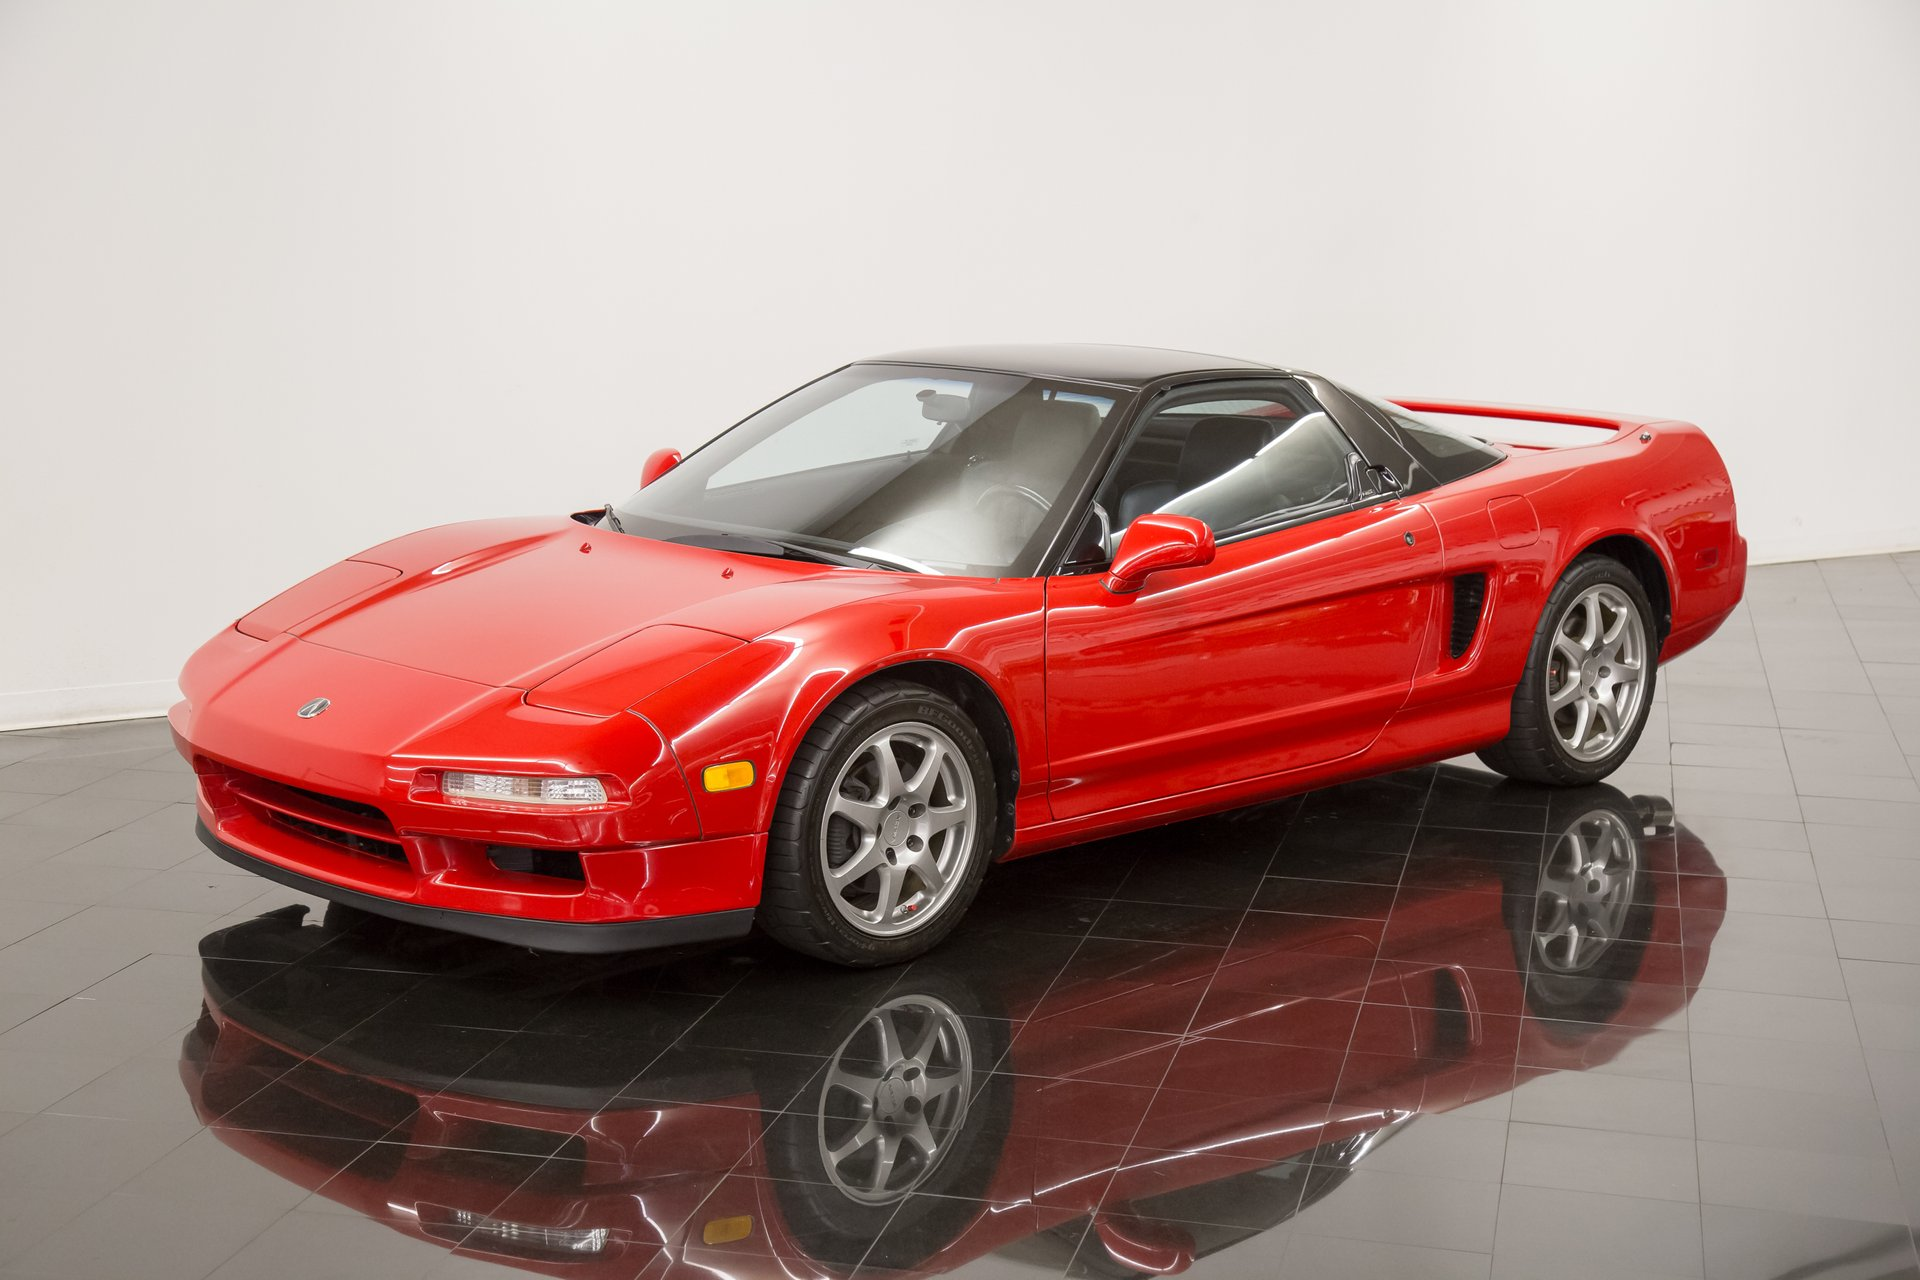 1994 Acura NSX For Sale | St. Louis Car Museum